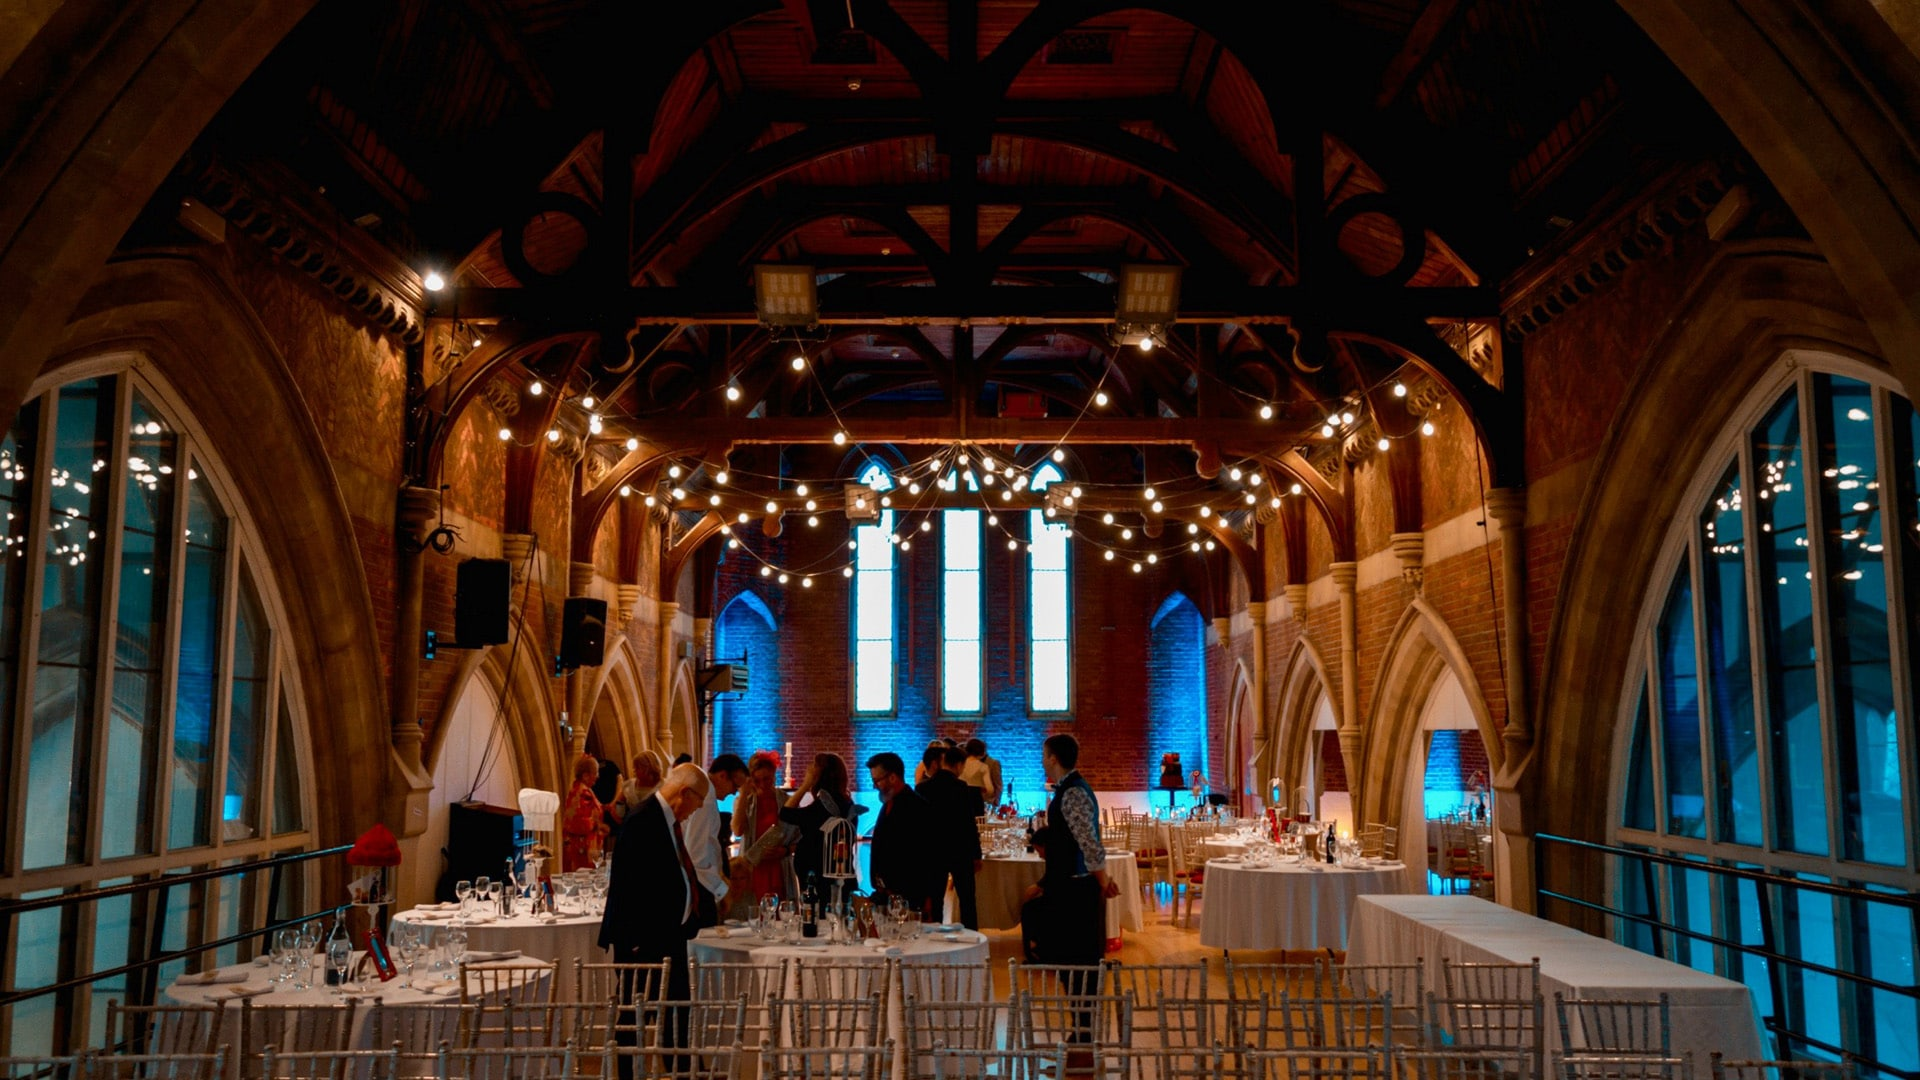 Wedding preparations take place at Jacksons Lane - lights hang from the ceiling and people set up chairs and tables